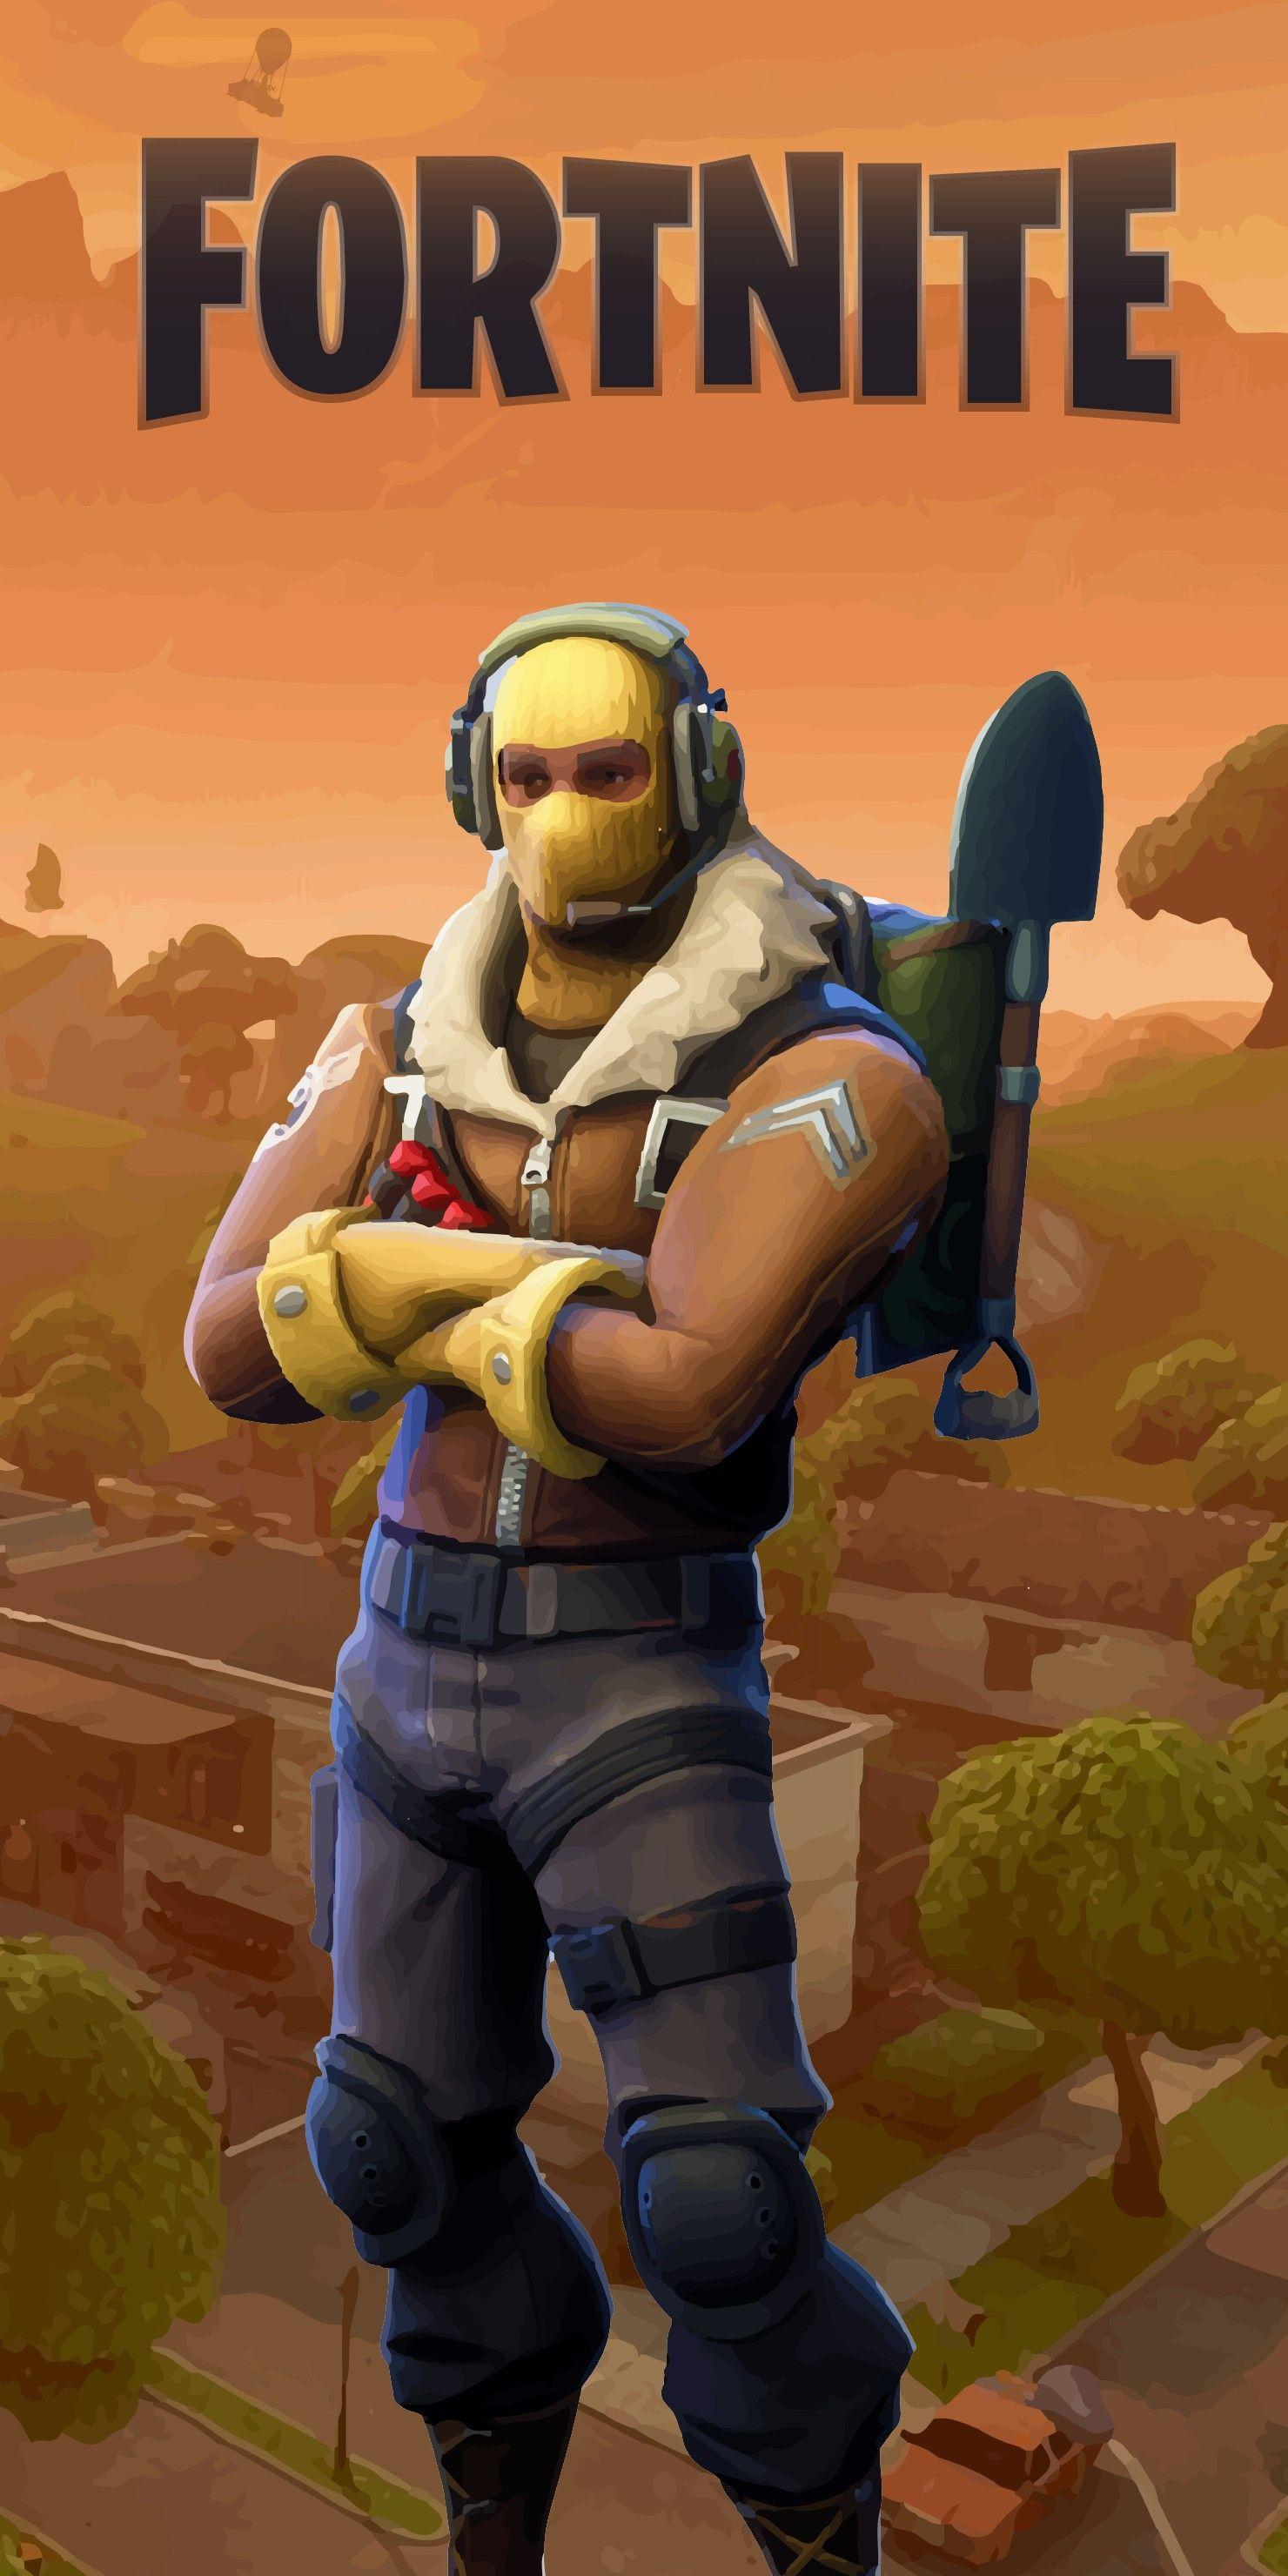 Fortnite Wallpapers for iPhone 8 Beautiful Raptor Phone Wallpapers